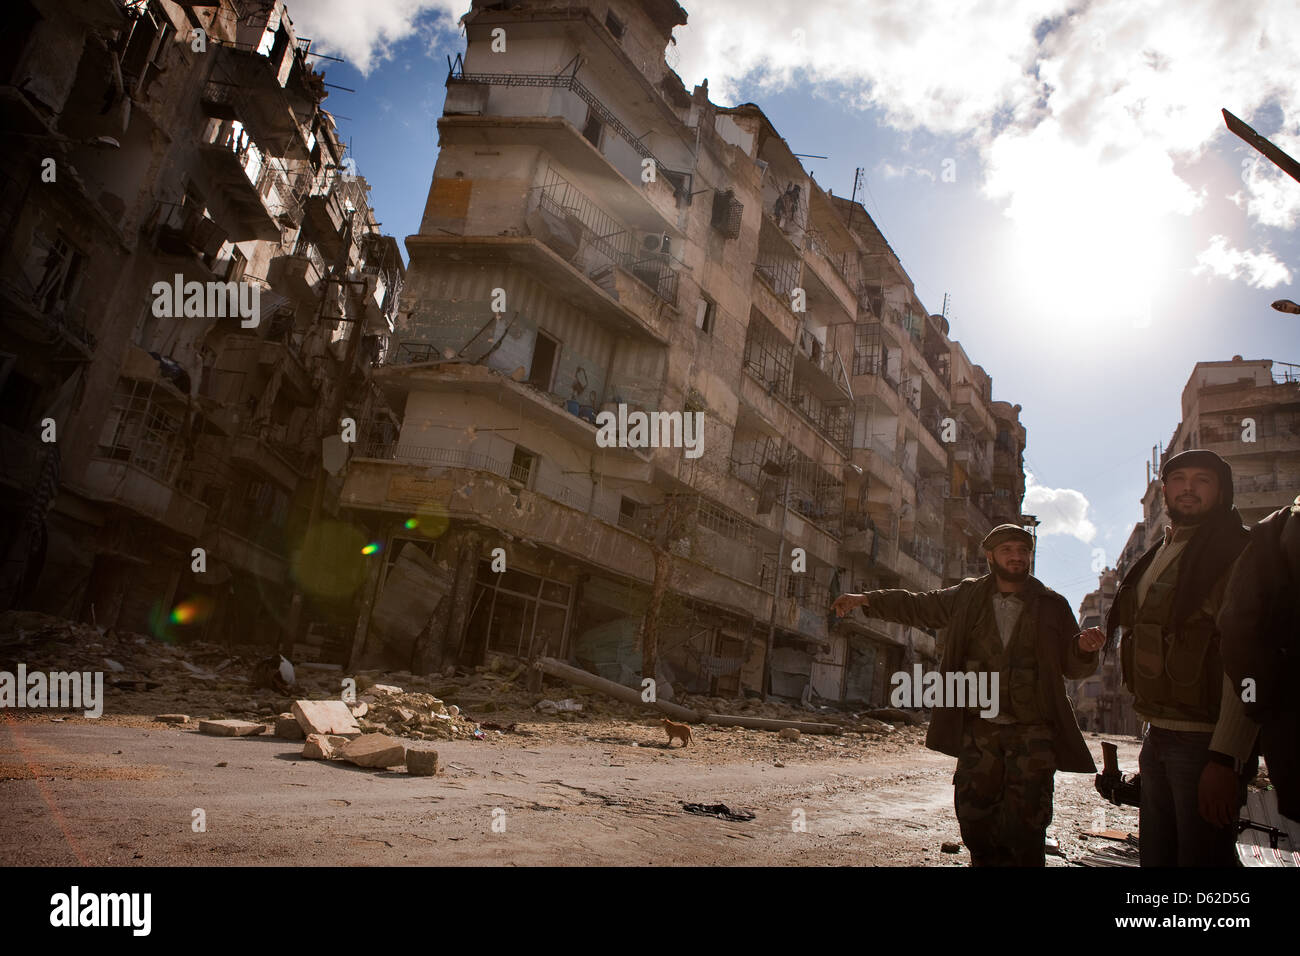 Aleppo, Syria. FSA fighters point at ruined street which is controlled by a government sniper while a cat crosses. - Stock Image